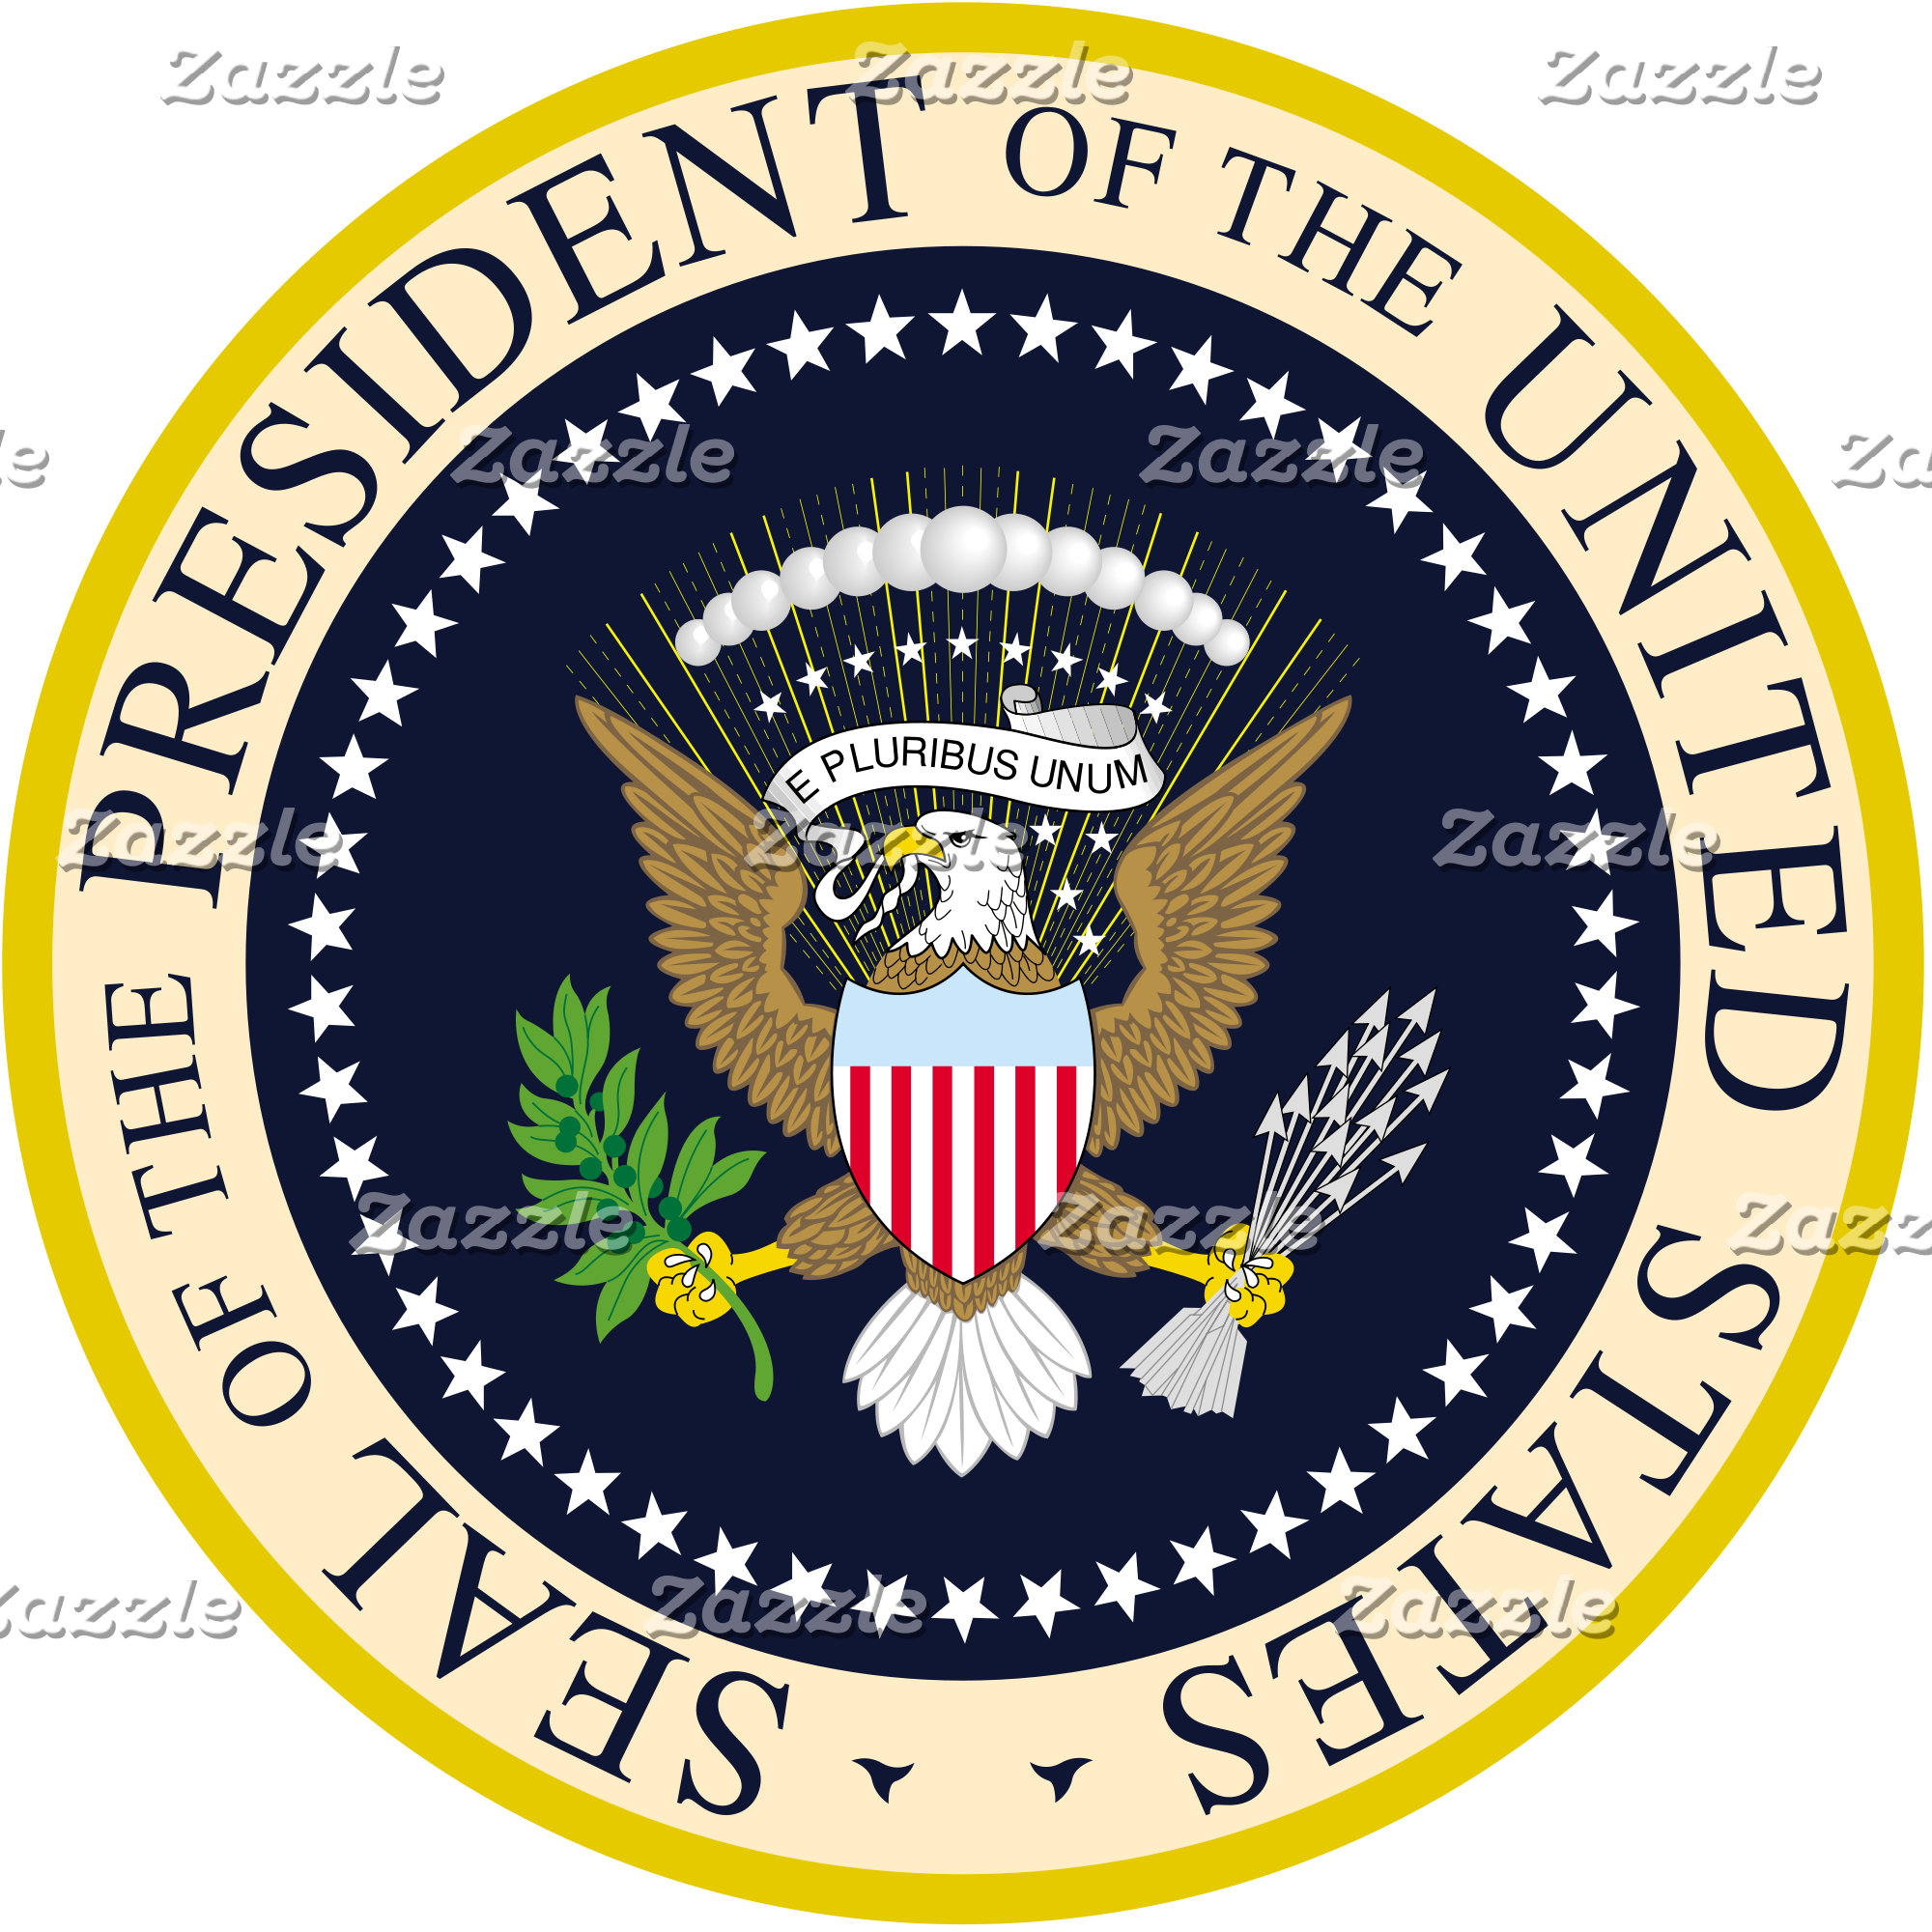 U.S PRESIDENTS AND THEIR VICE PRESIDENTS